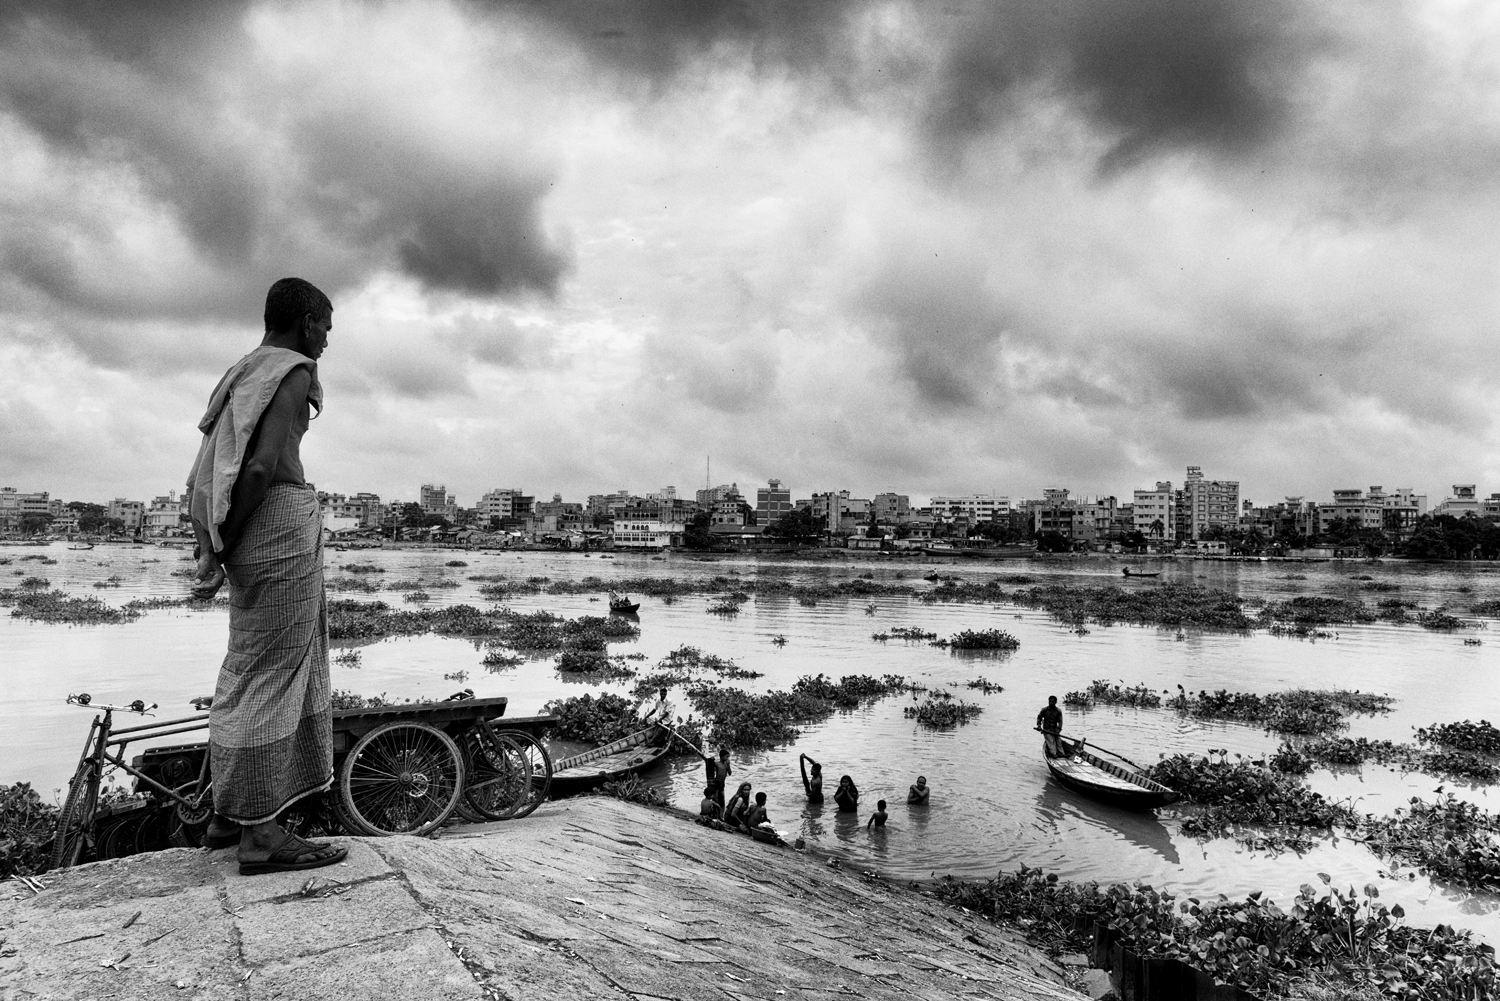 The Buriganga River gave life to Dhaka and Dhaka destroyed it. Chemical agents such as hexavalent chromium, mercury, sulphuric acid, formaldehyde, toluene, cadmium, chromium acetate are responsible for the death of the Buriganga River and for thousands of cases of severe intoxication, often with fatal consequences for the people who work or live in the surrounding areas.  South Dhaka, Bangladesh